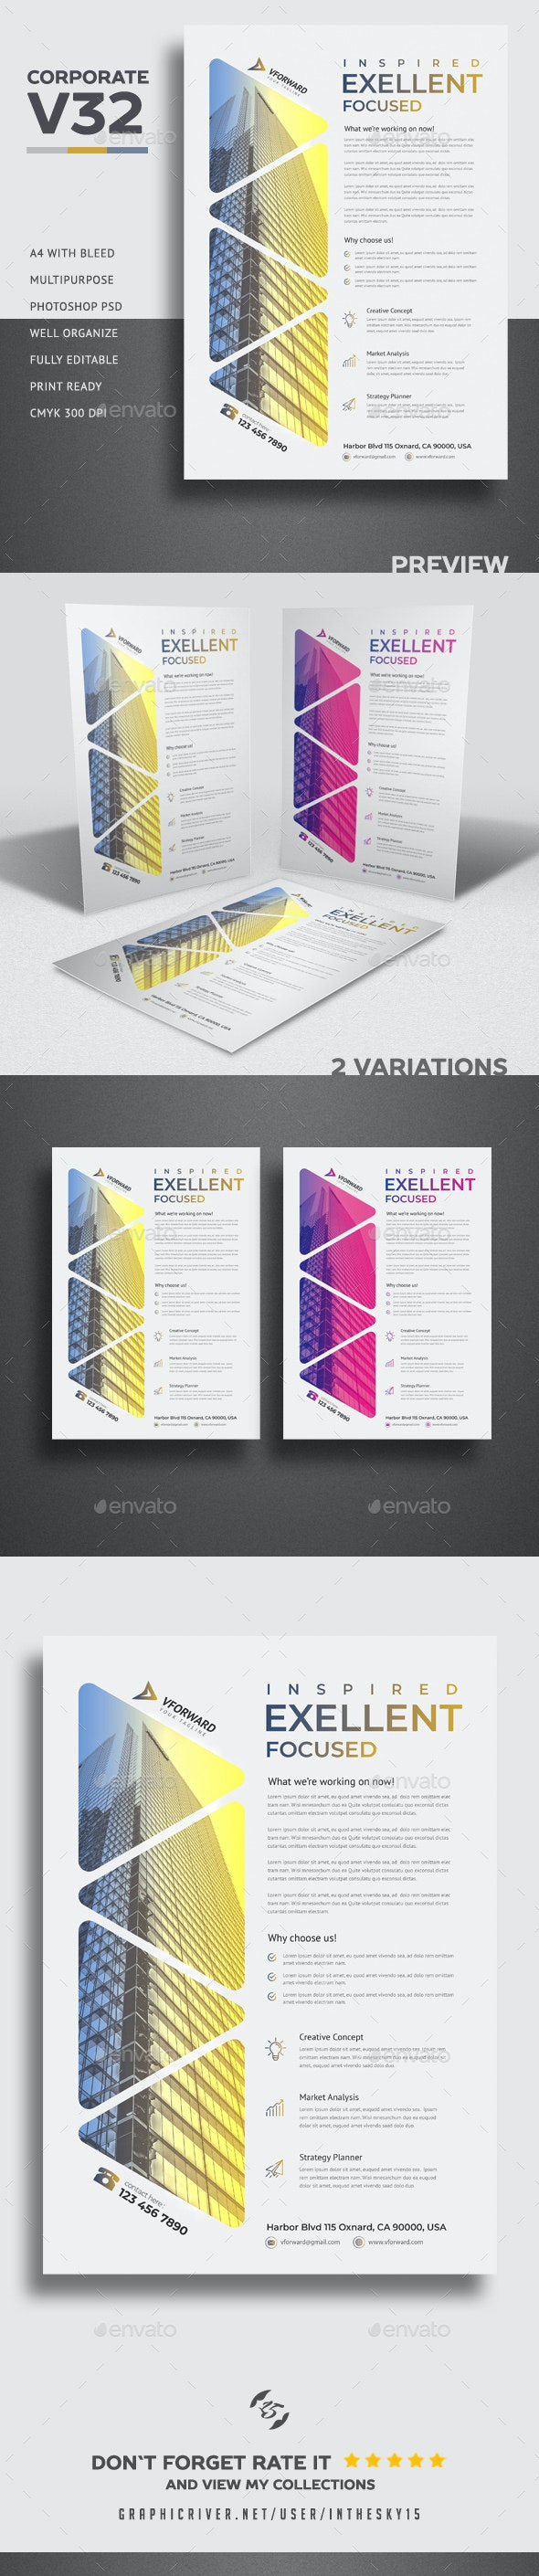 Corporate V32 Flyer - Flyers Print Templates